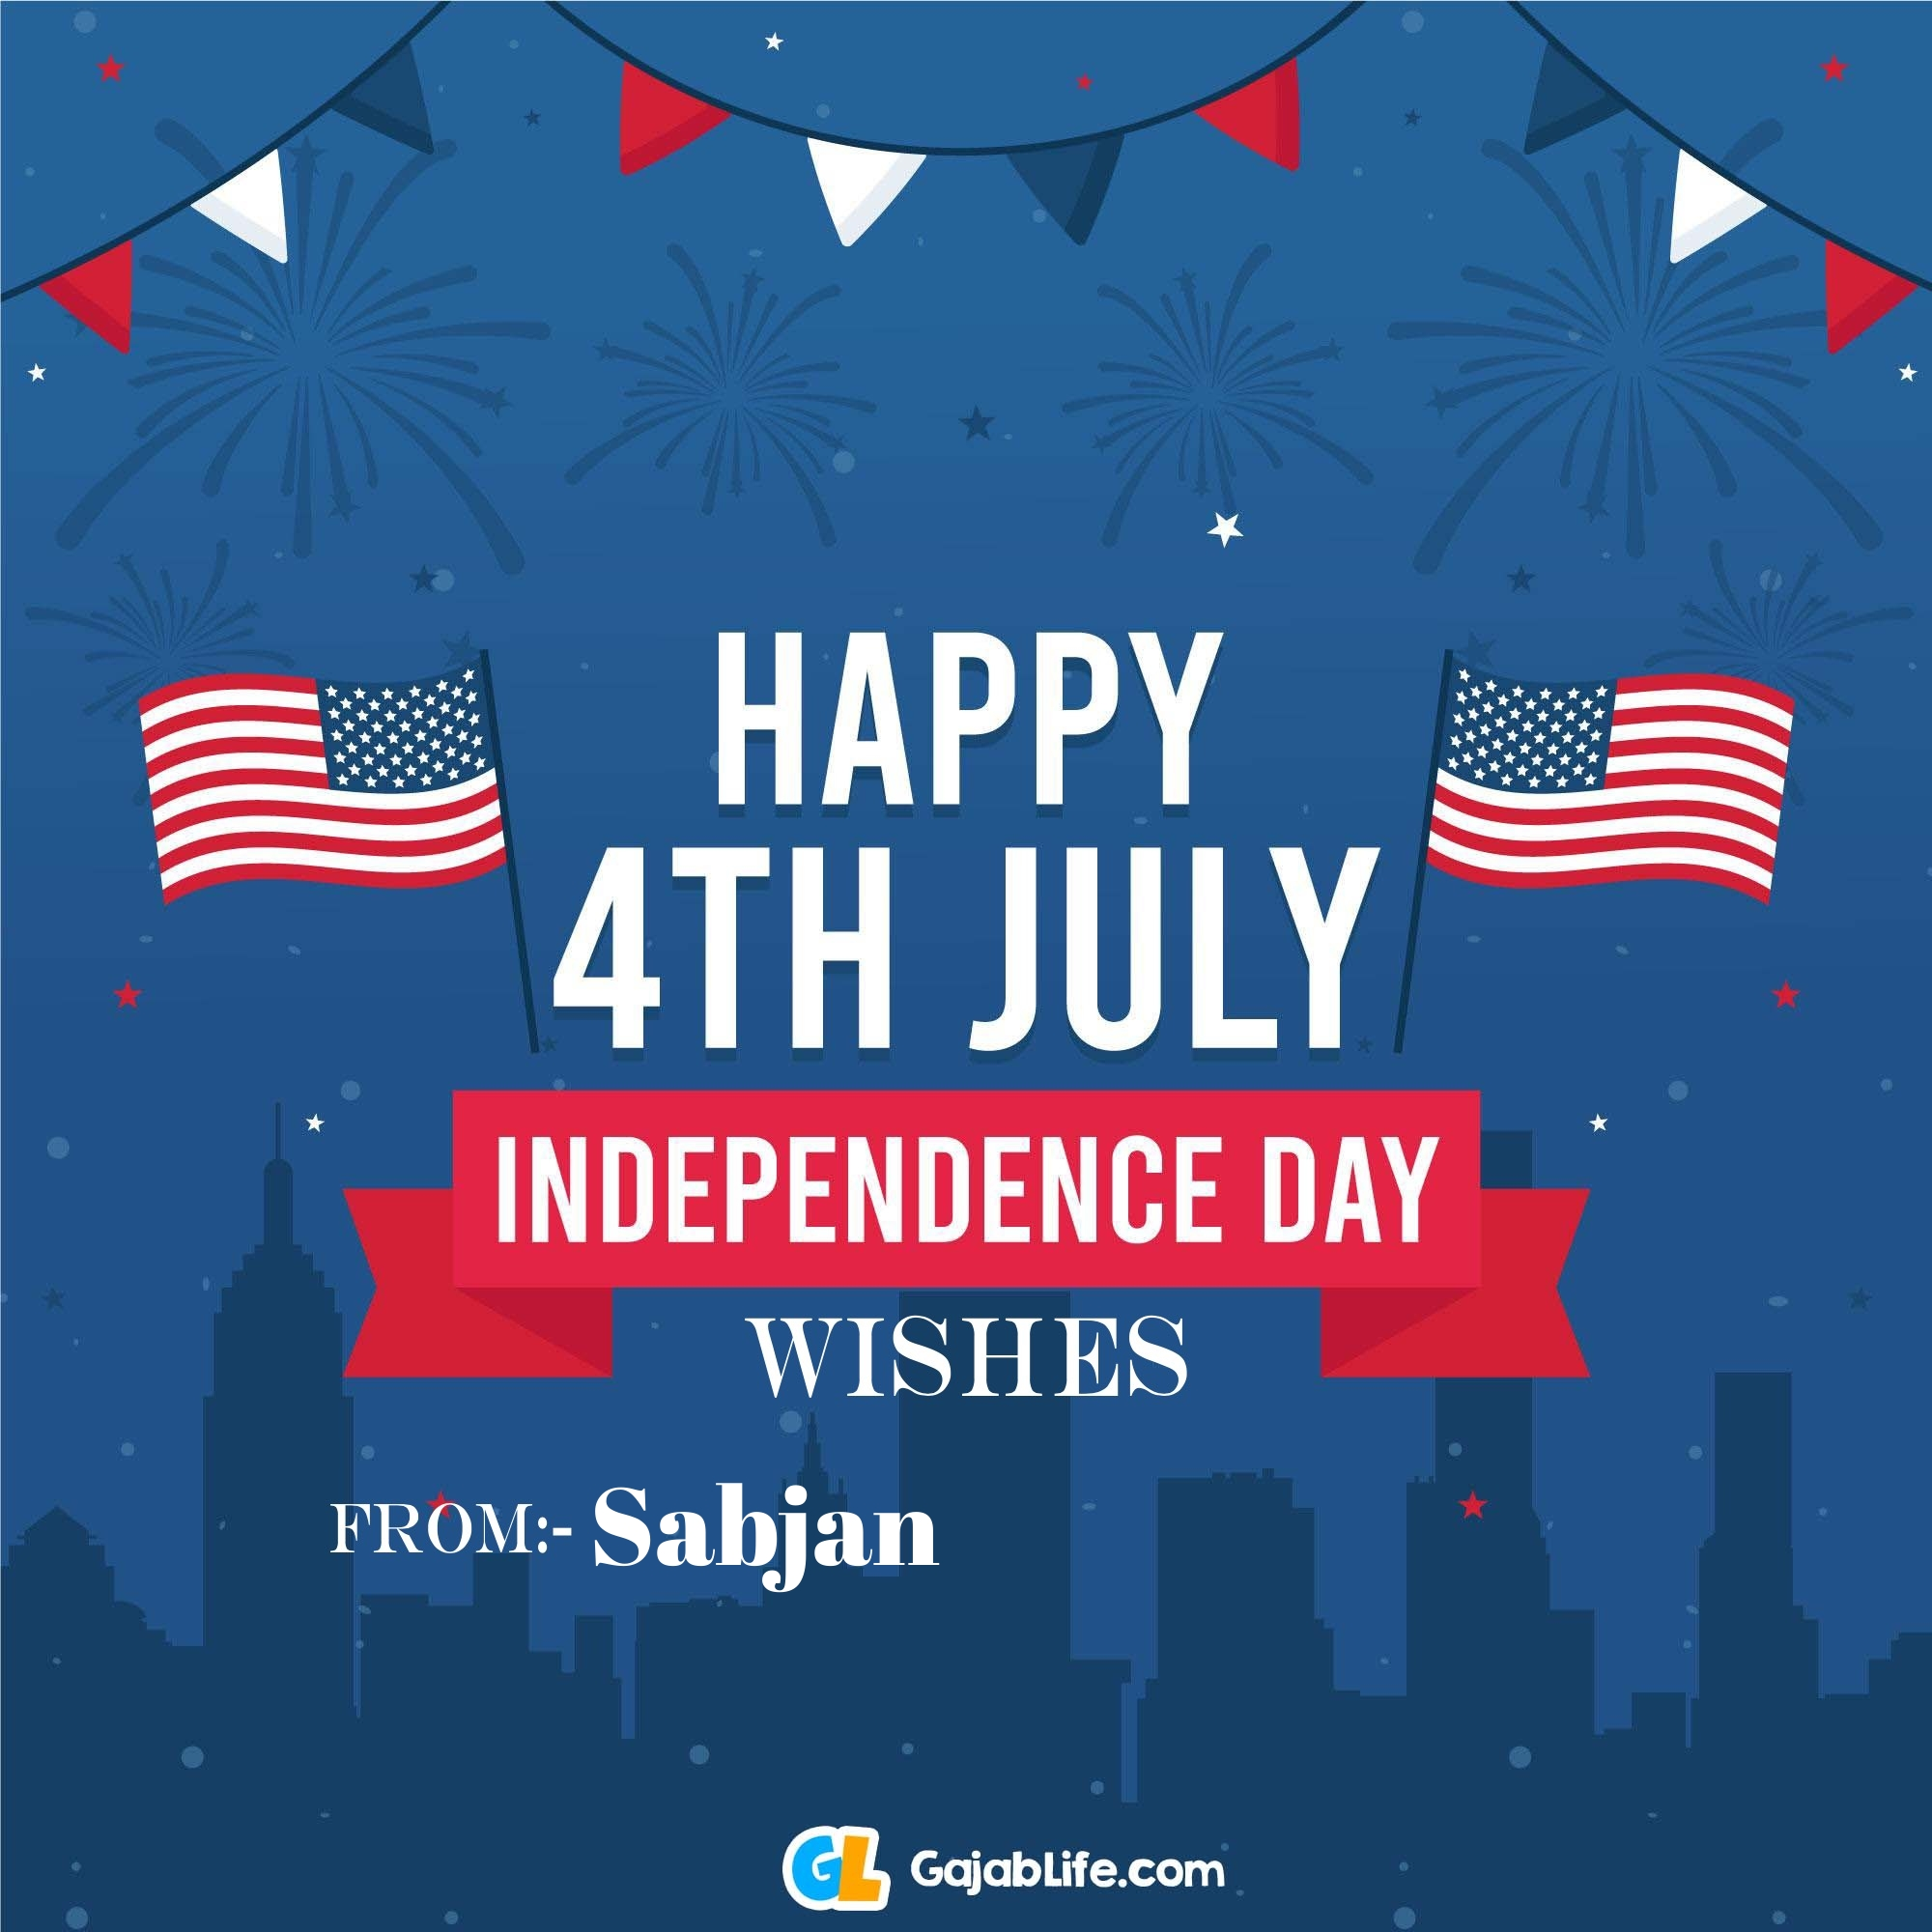 Sabjan happy independence day united states of america images